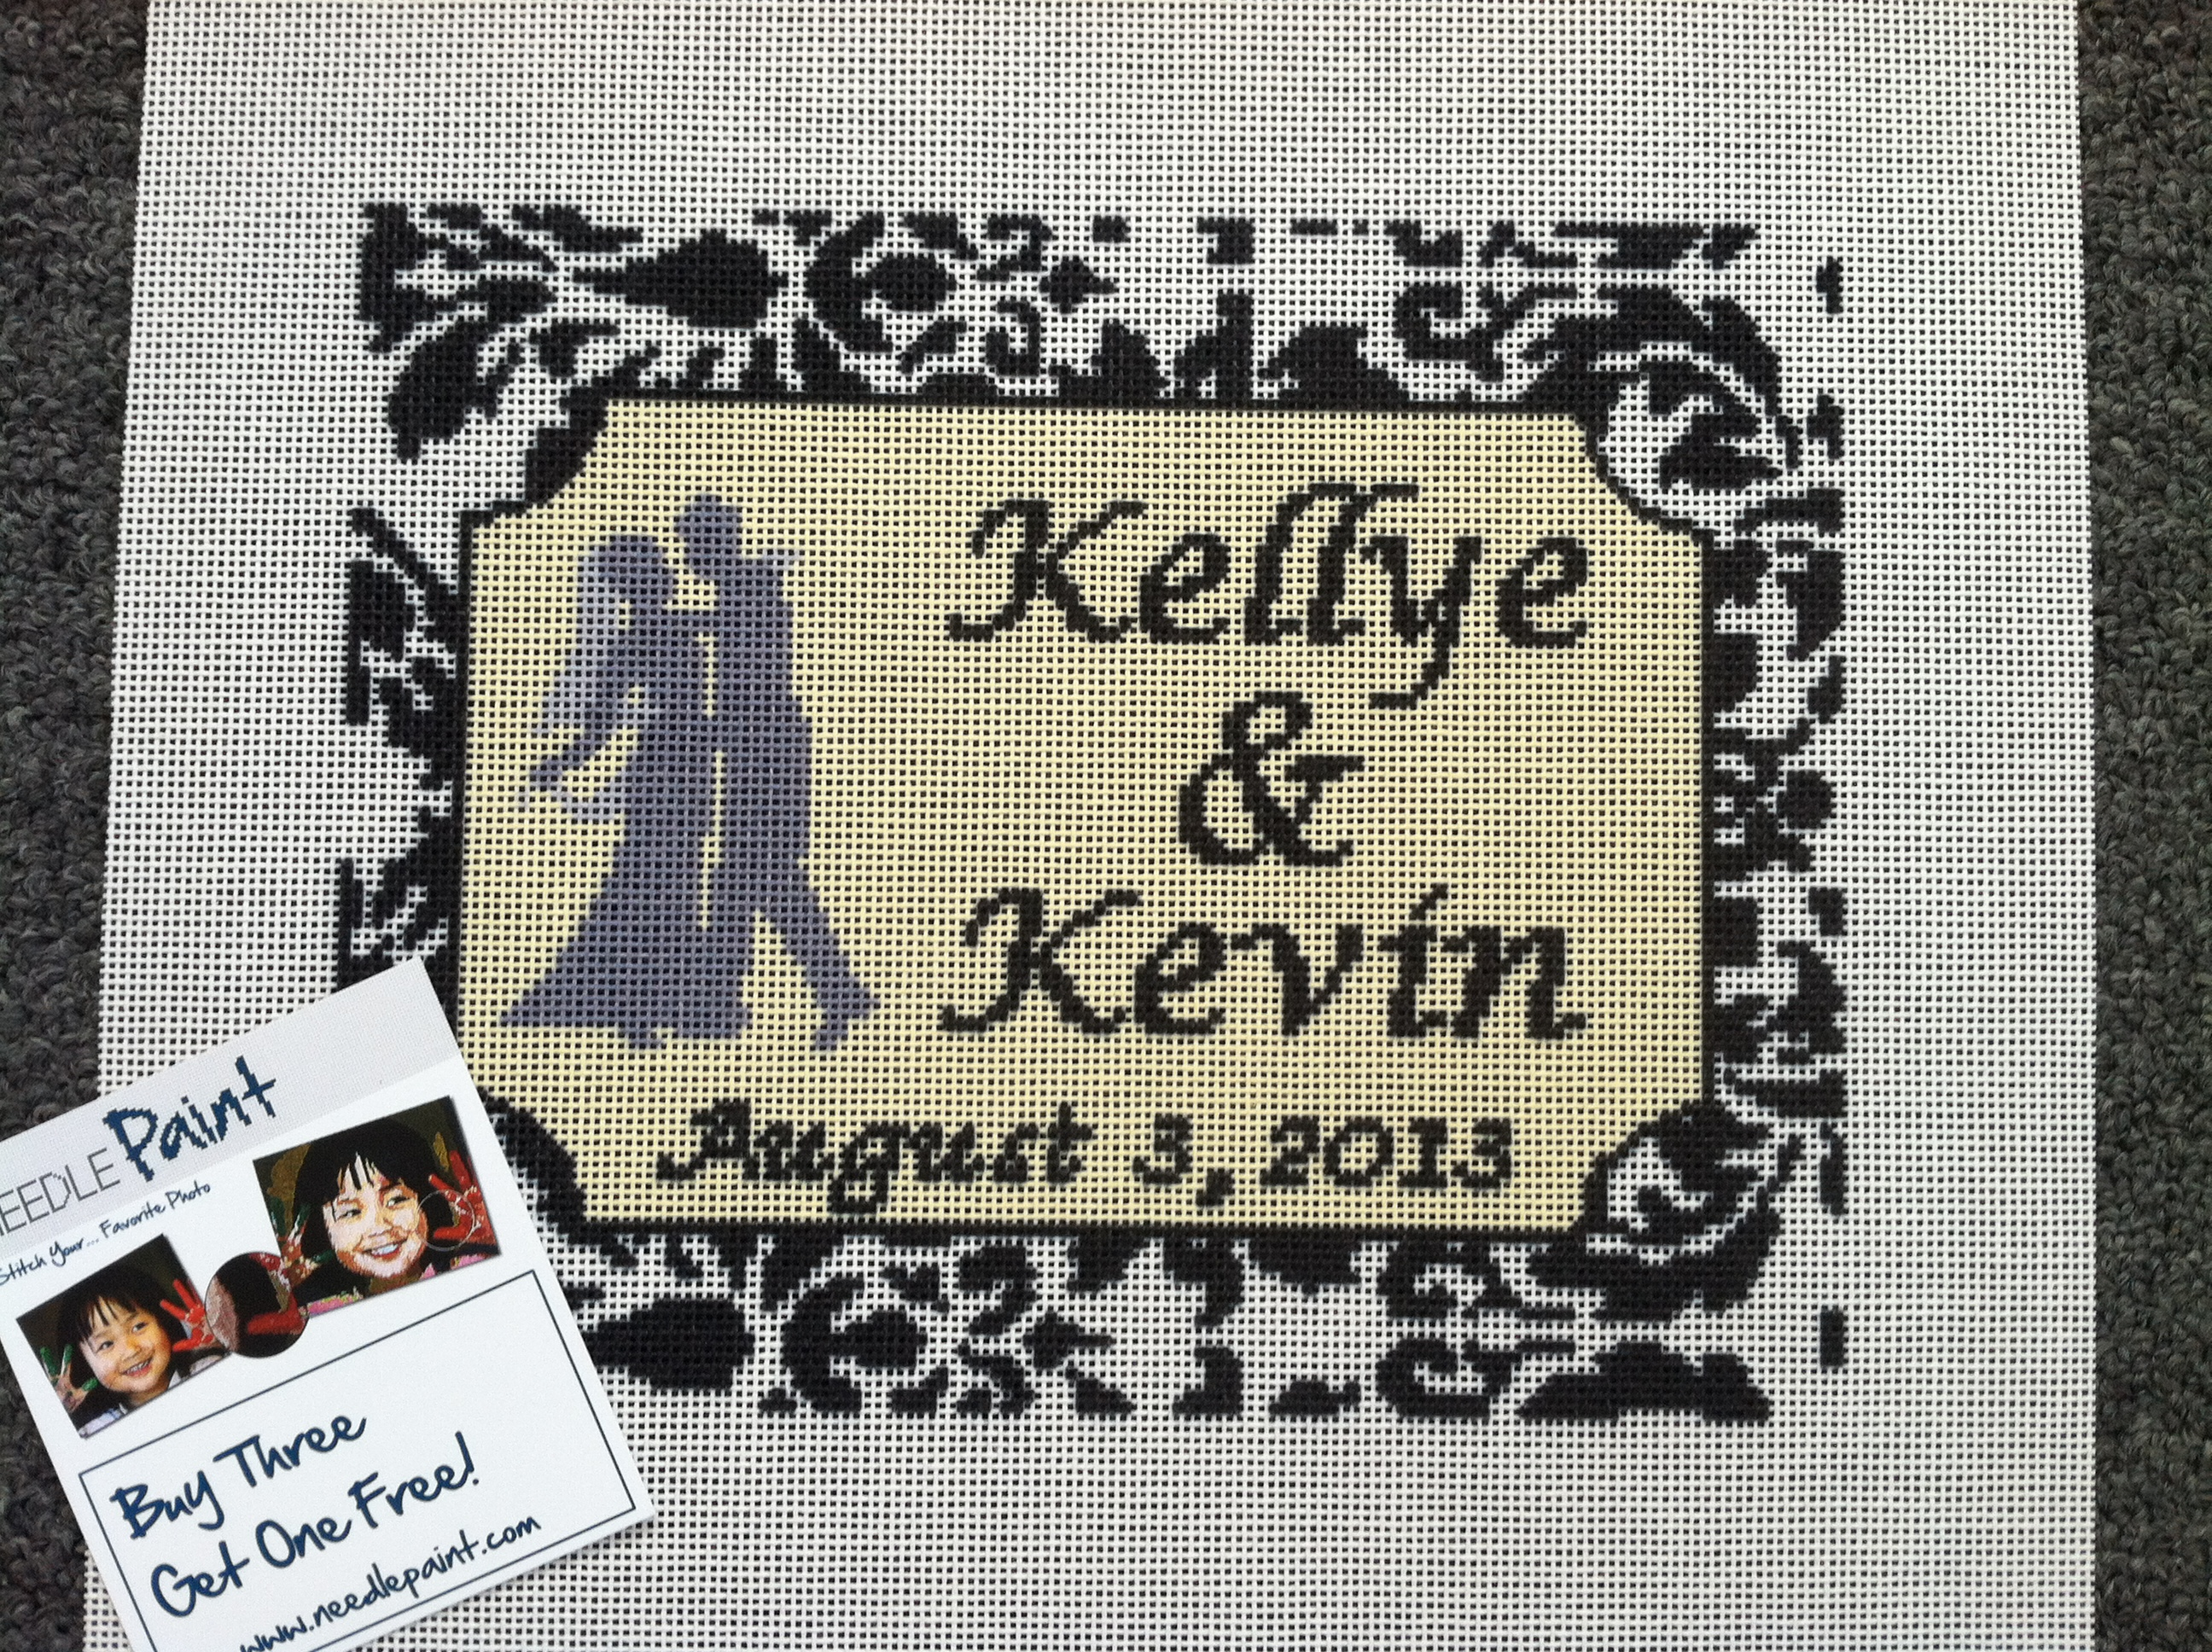 wedding needlepoint needlepoint kits and canvas designs